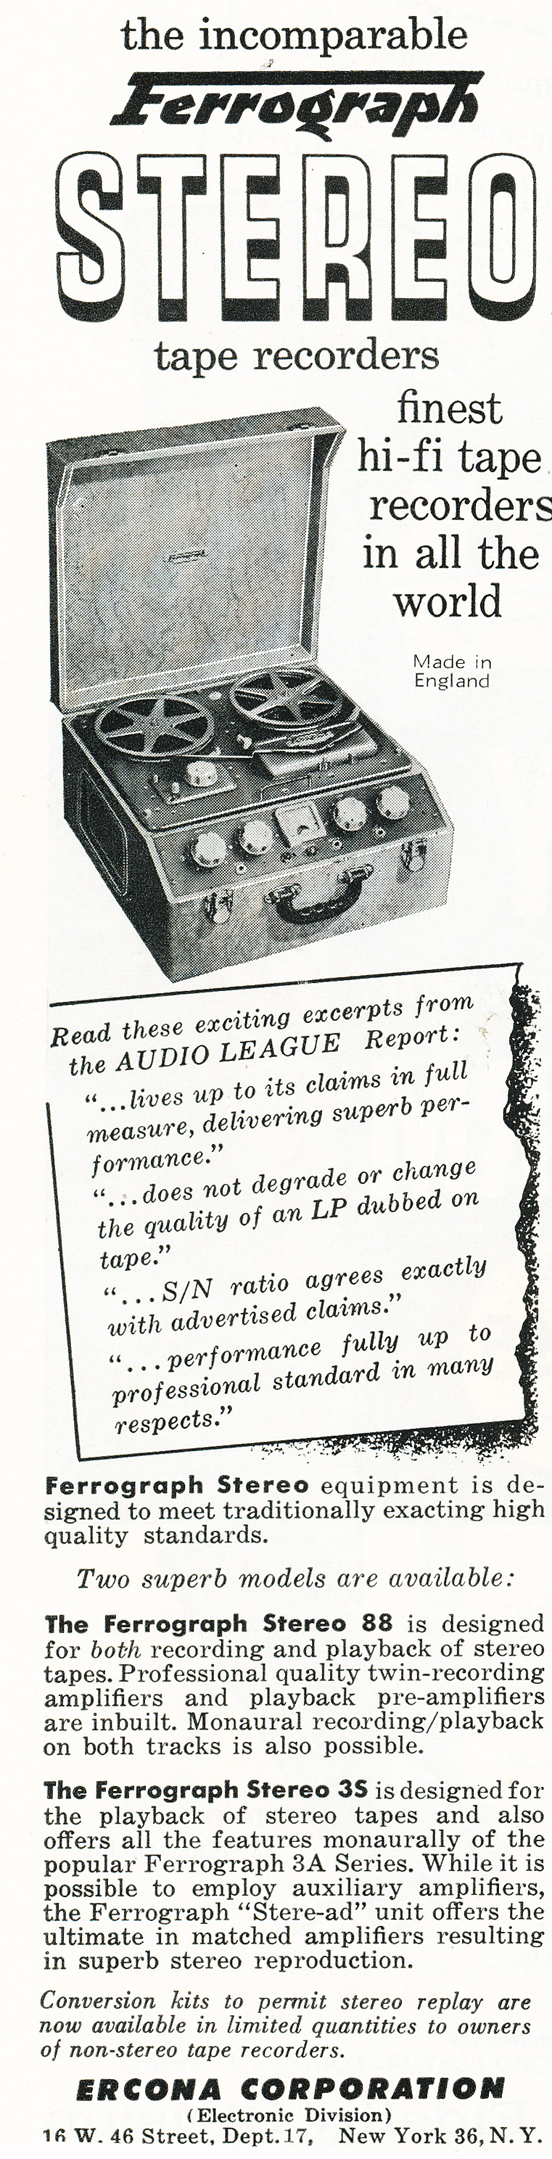 1959 ad for the Ferrograph 88 and 35 reel to reel tape recorders in Reel2ReelTexas.com's vintage recording collection